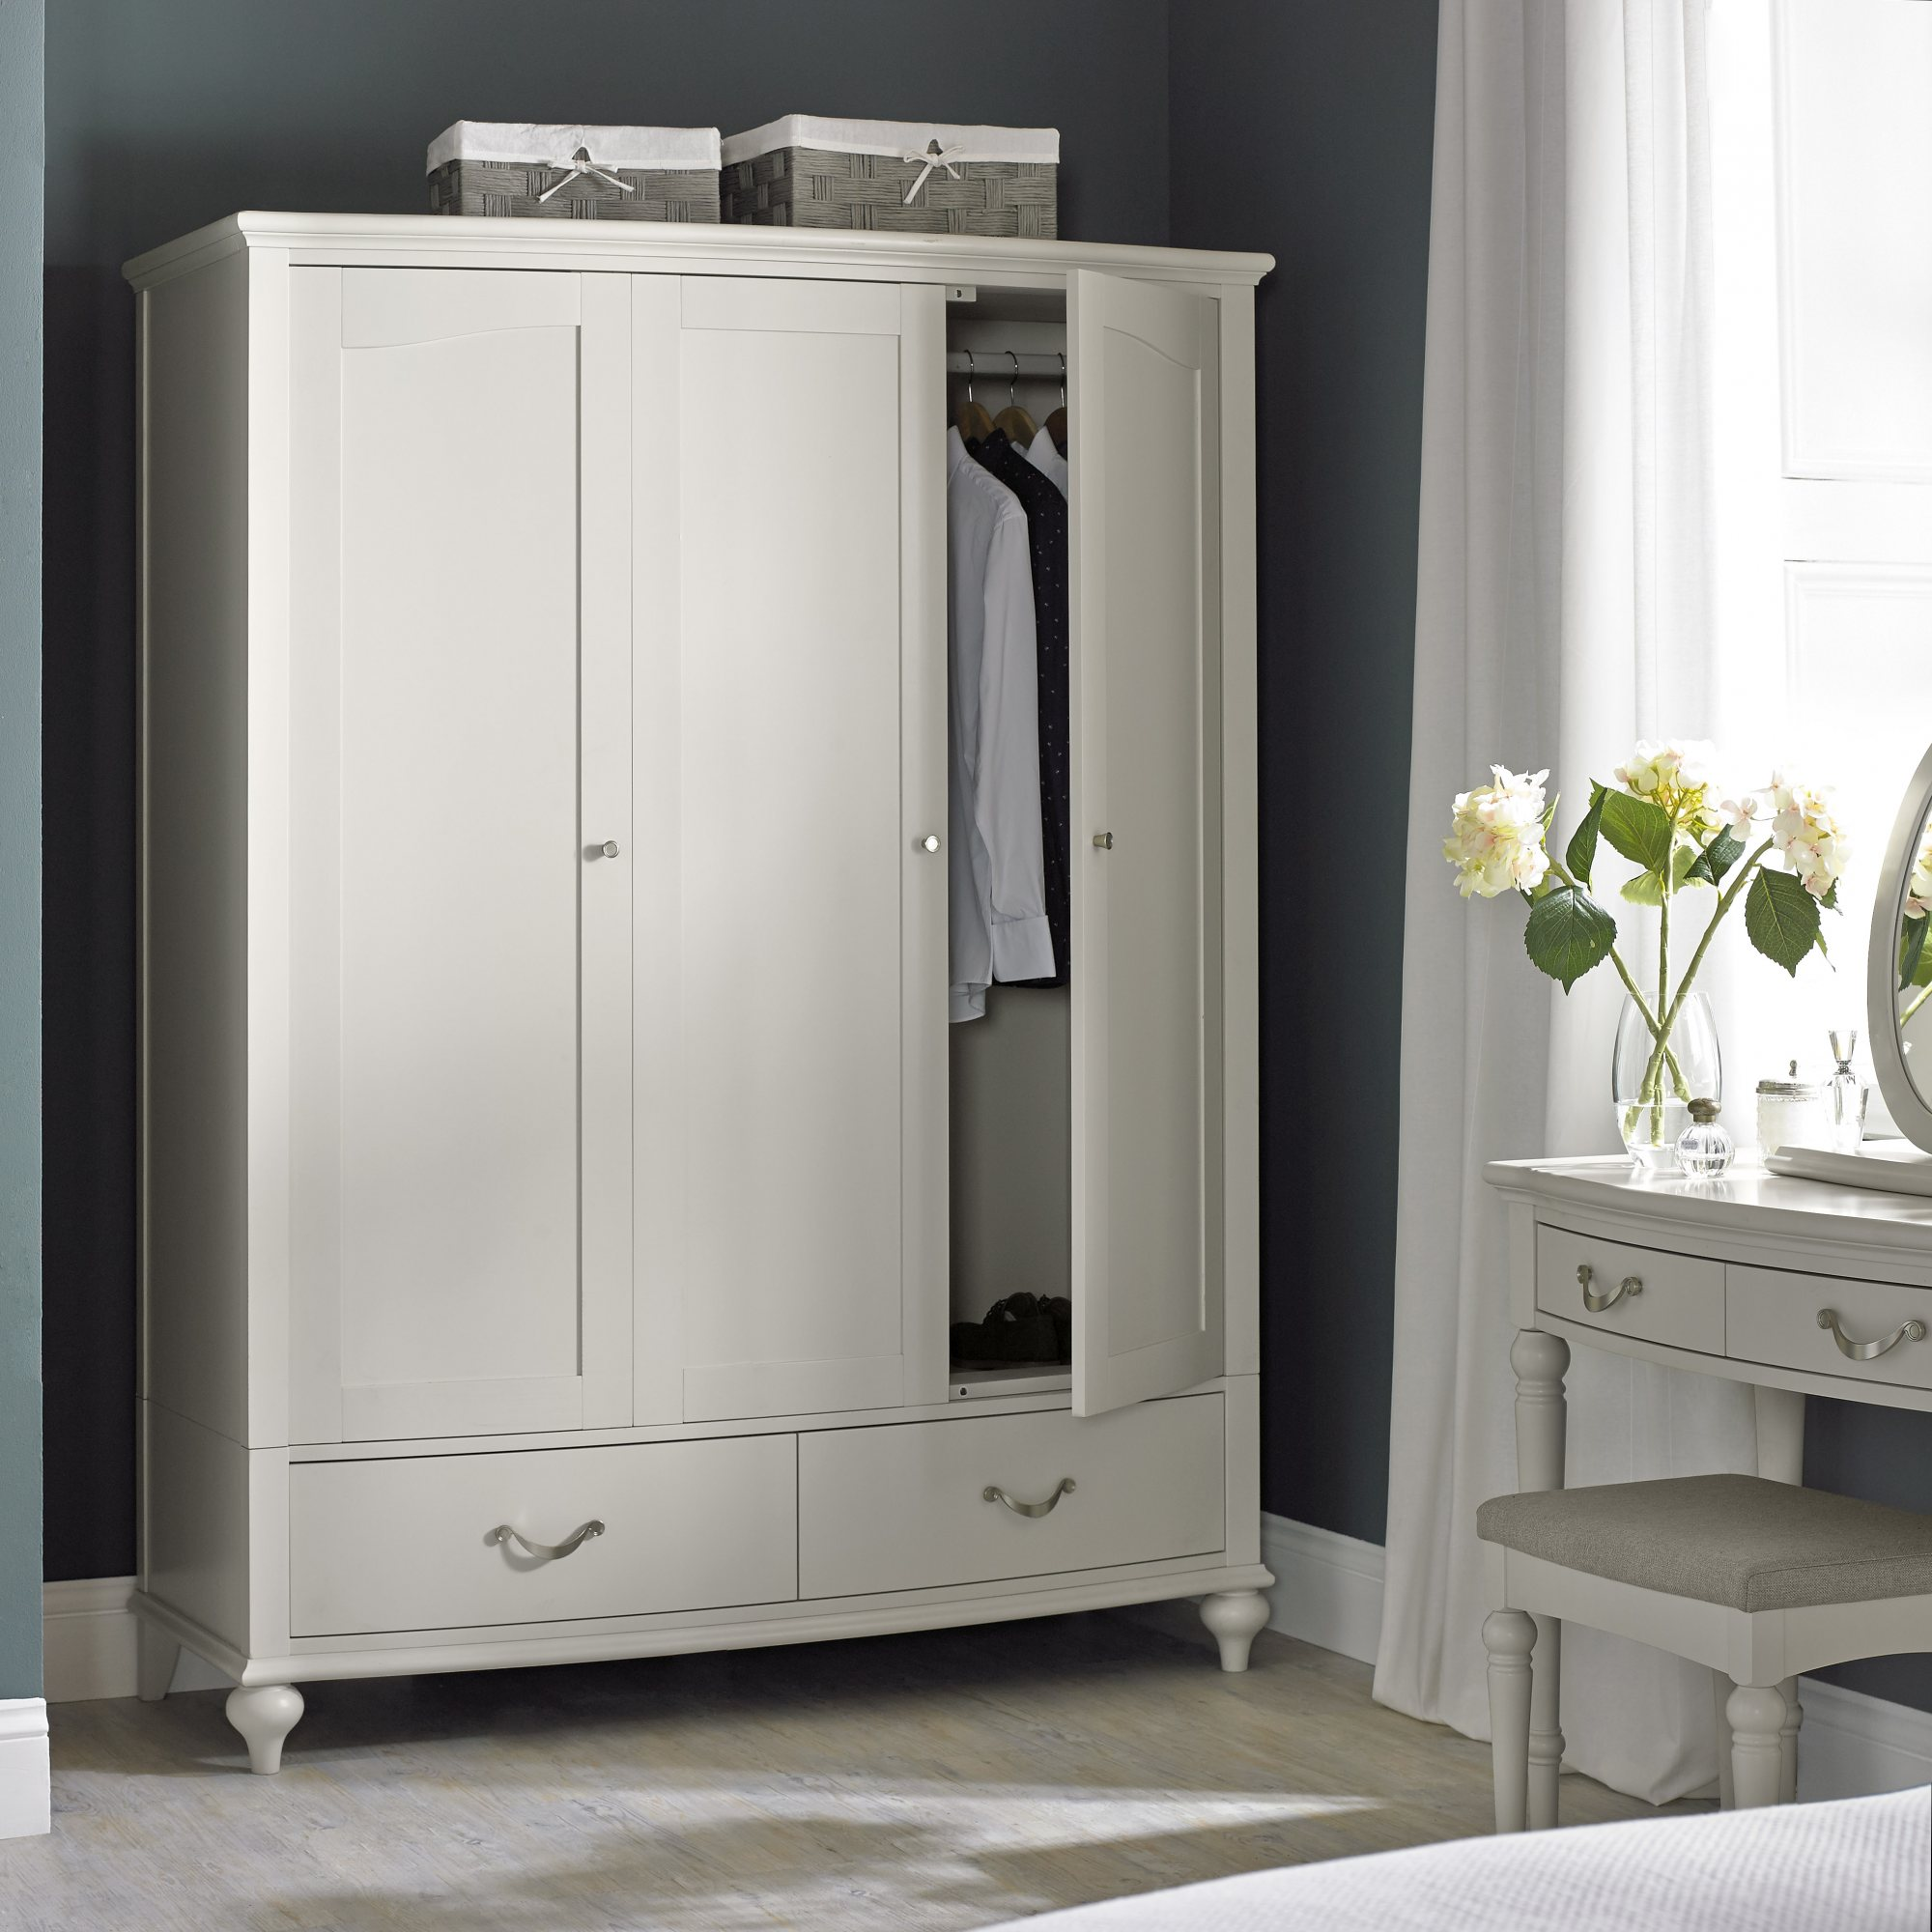 MONICA GREY TRIPLE WARDROBE - L155cm x D64cm x H200cm